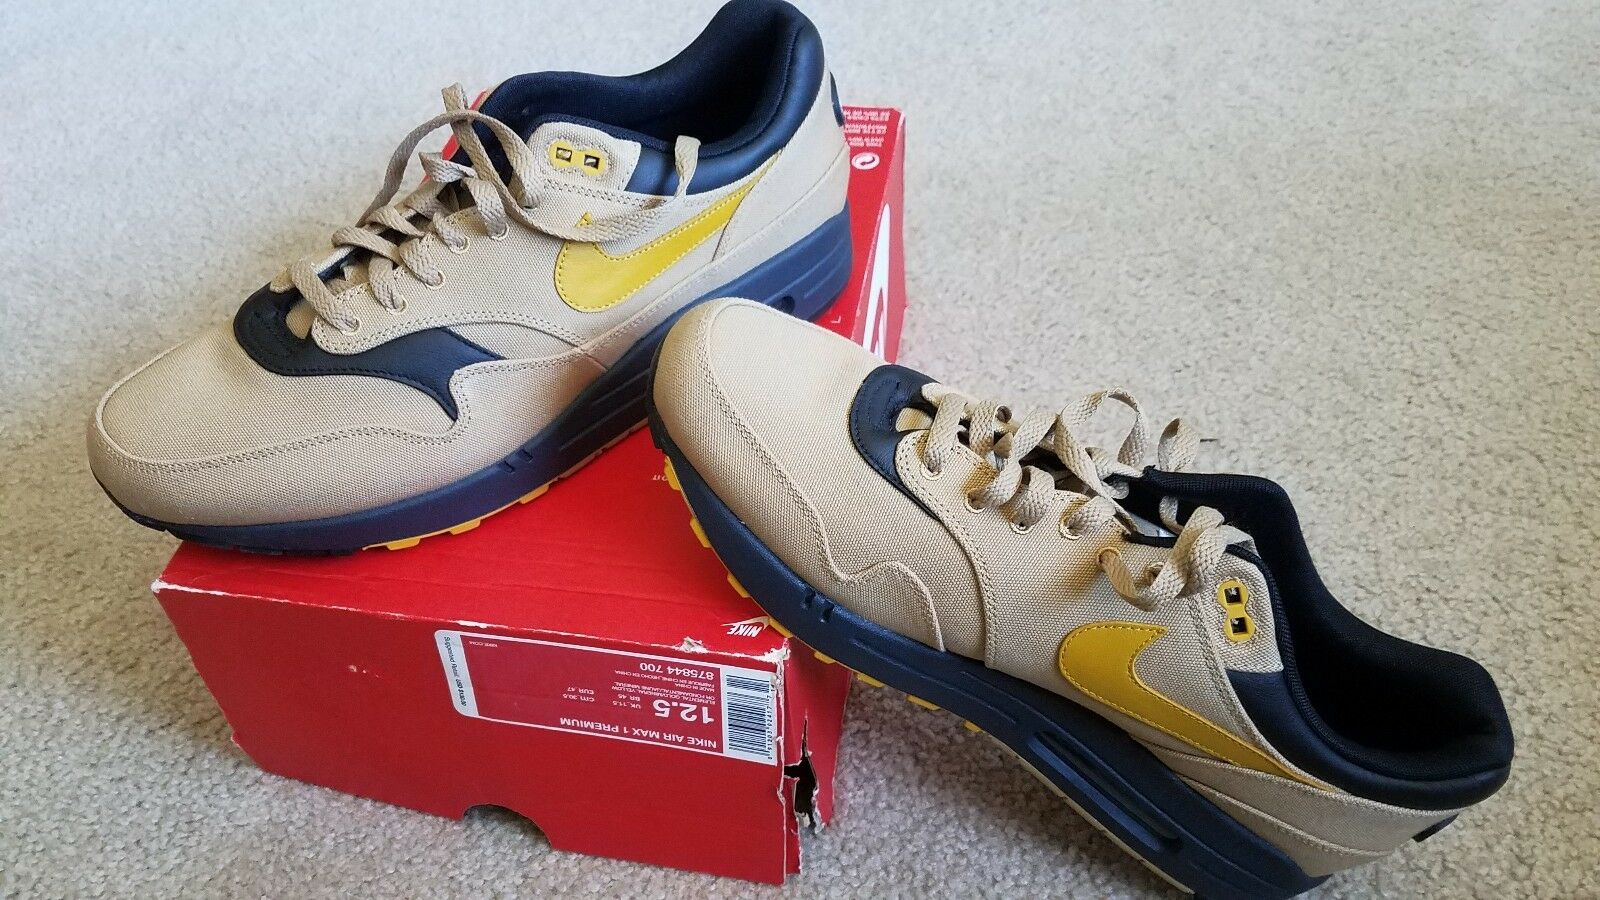 Nike Air Max 1 Premium Elemental Gold/Mineral Yellow Size 12.5